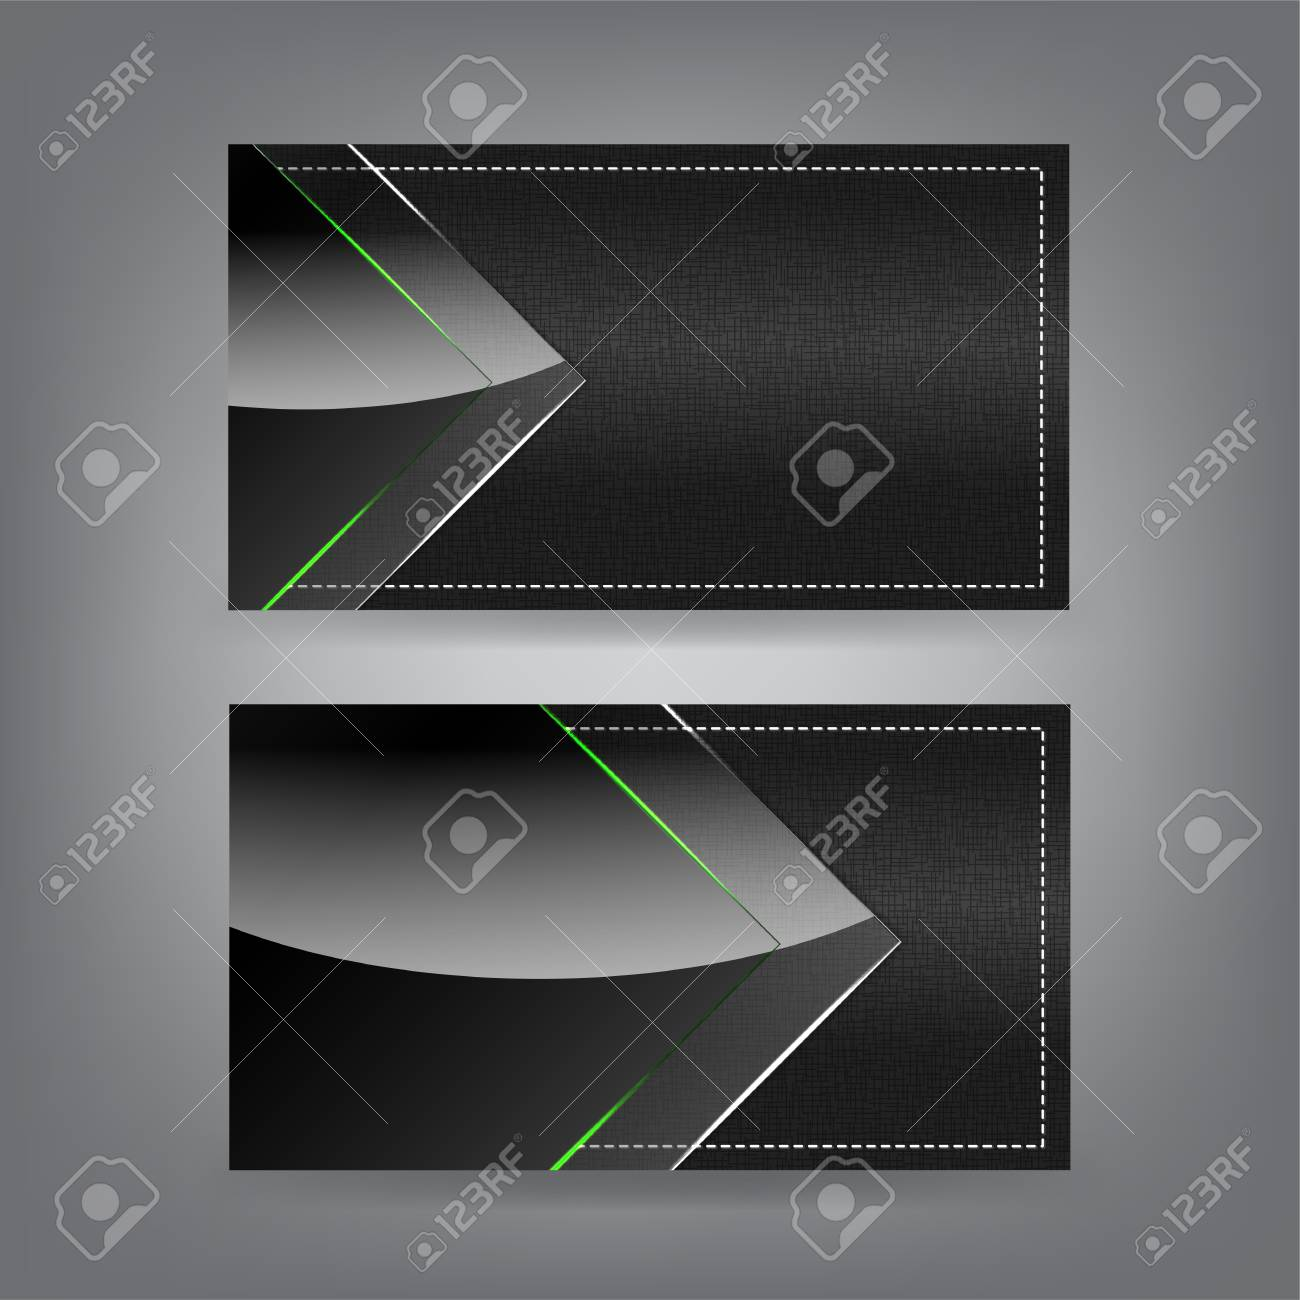 Textile and neon glass theme business card template (Part 4) Stock Vector - 18421086